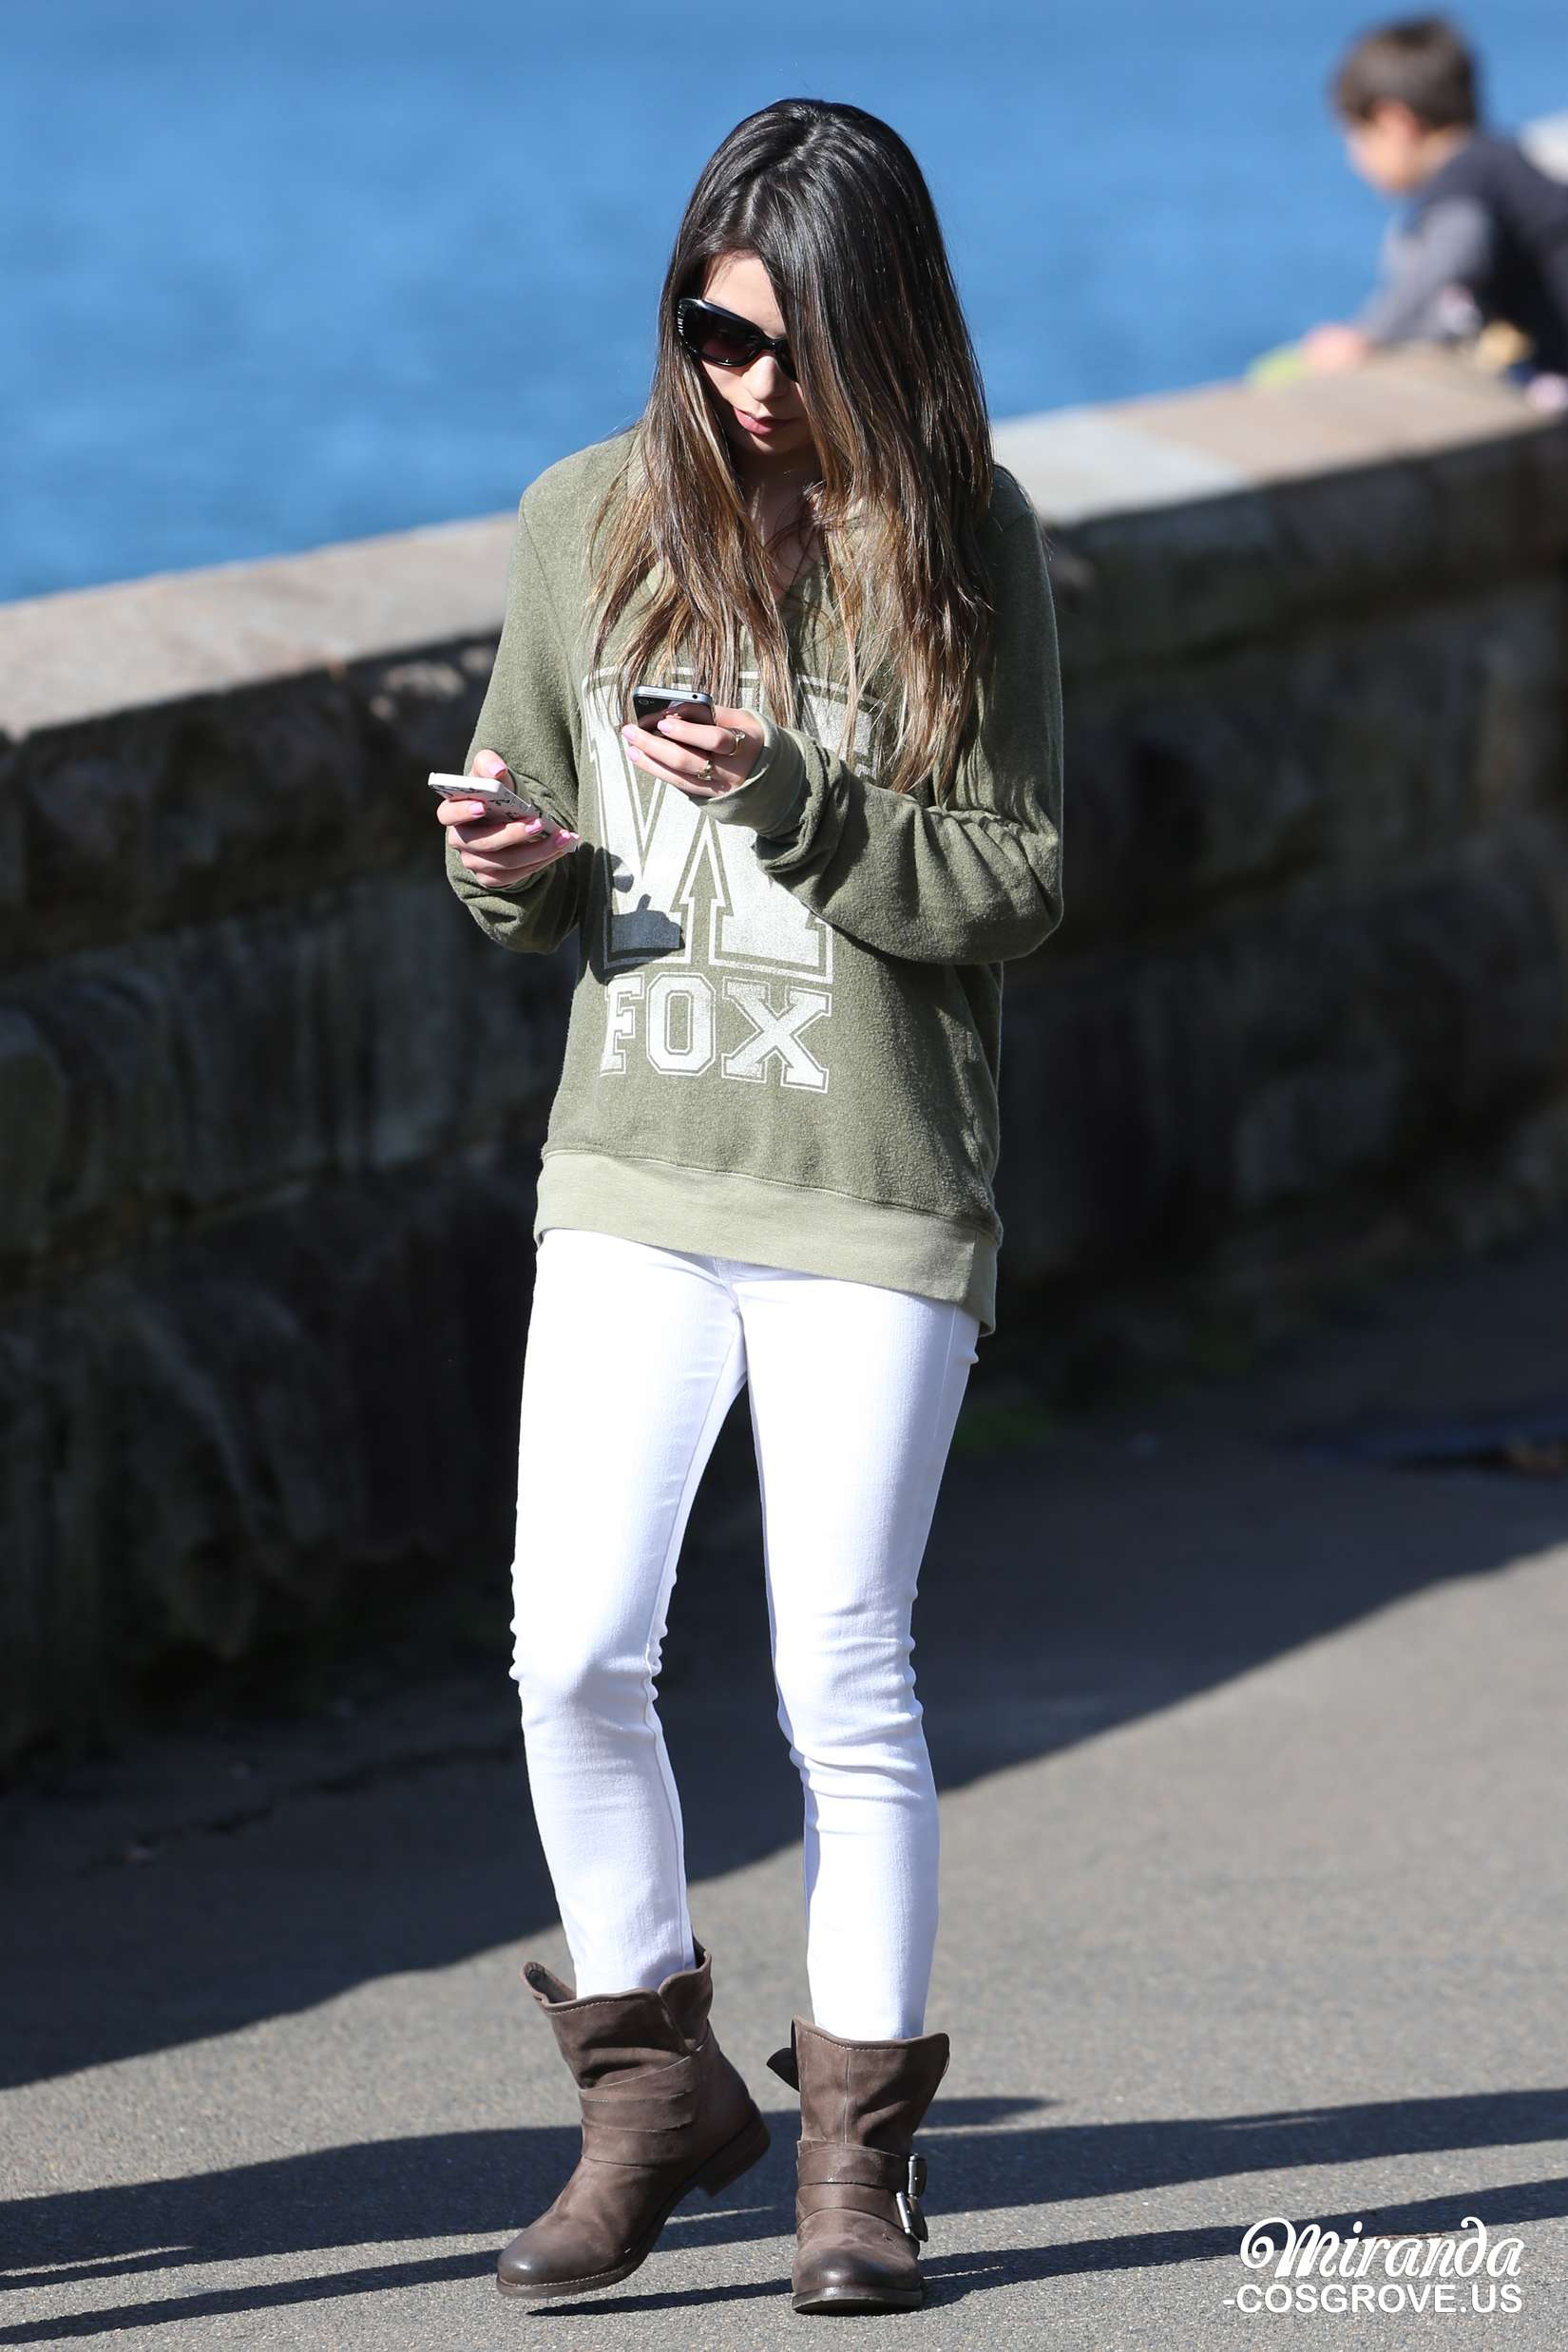 Miranda Cosgrove at The Sydney Opera House -15 - Full SizeMiranda Cosgrove House